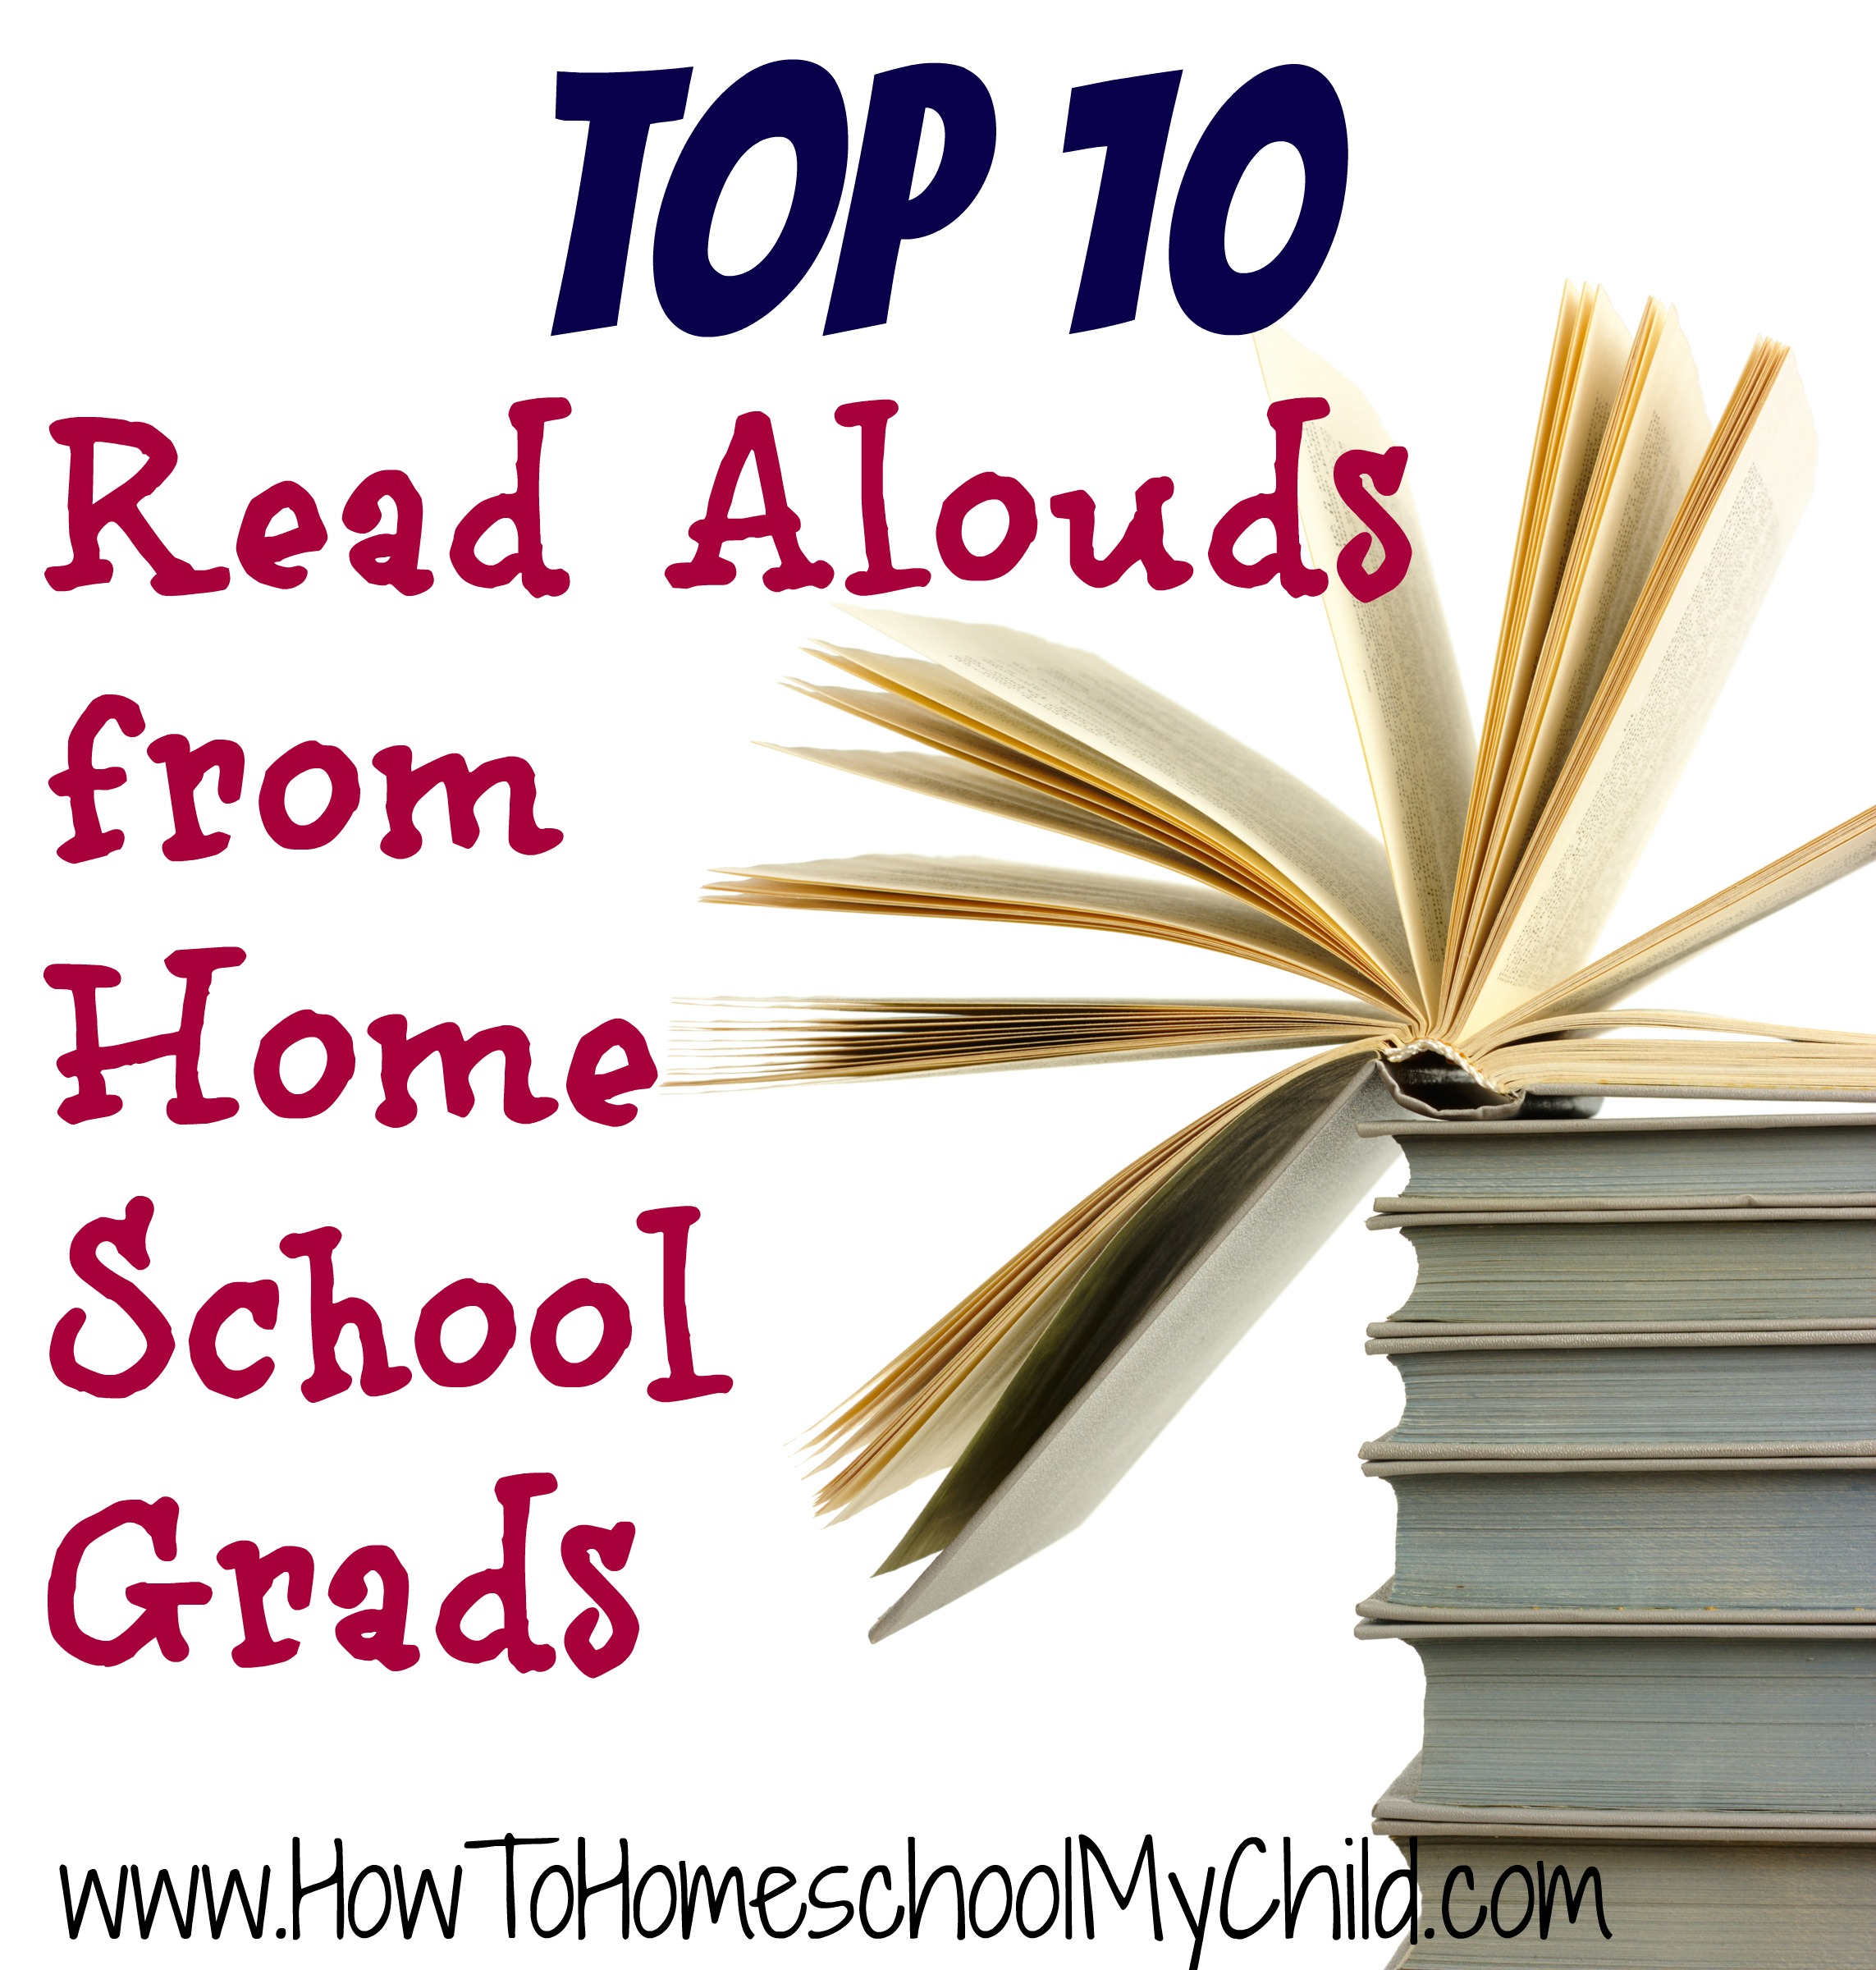 Discover our families favorite read-alouds at www.HowToHomeschoolMyChild.com